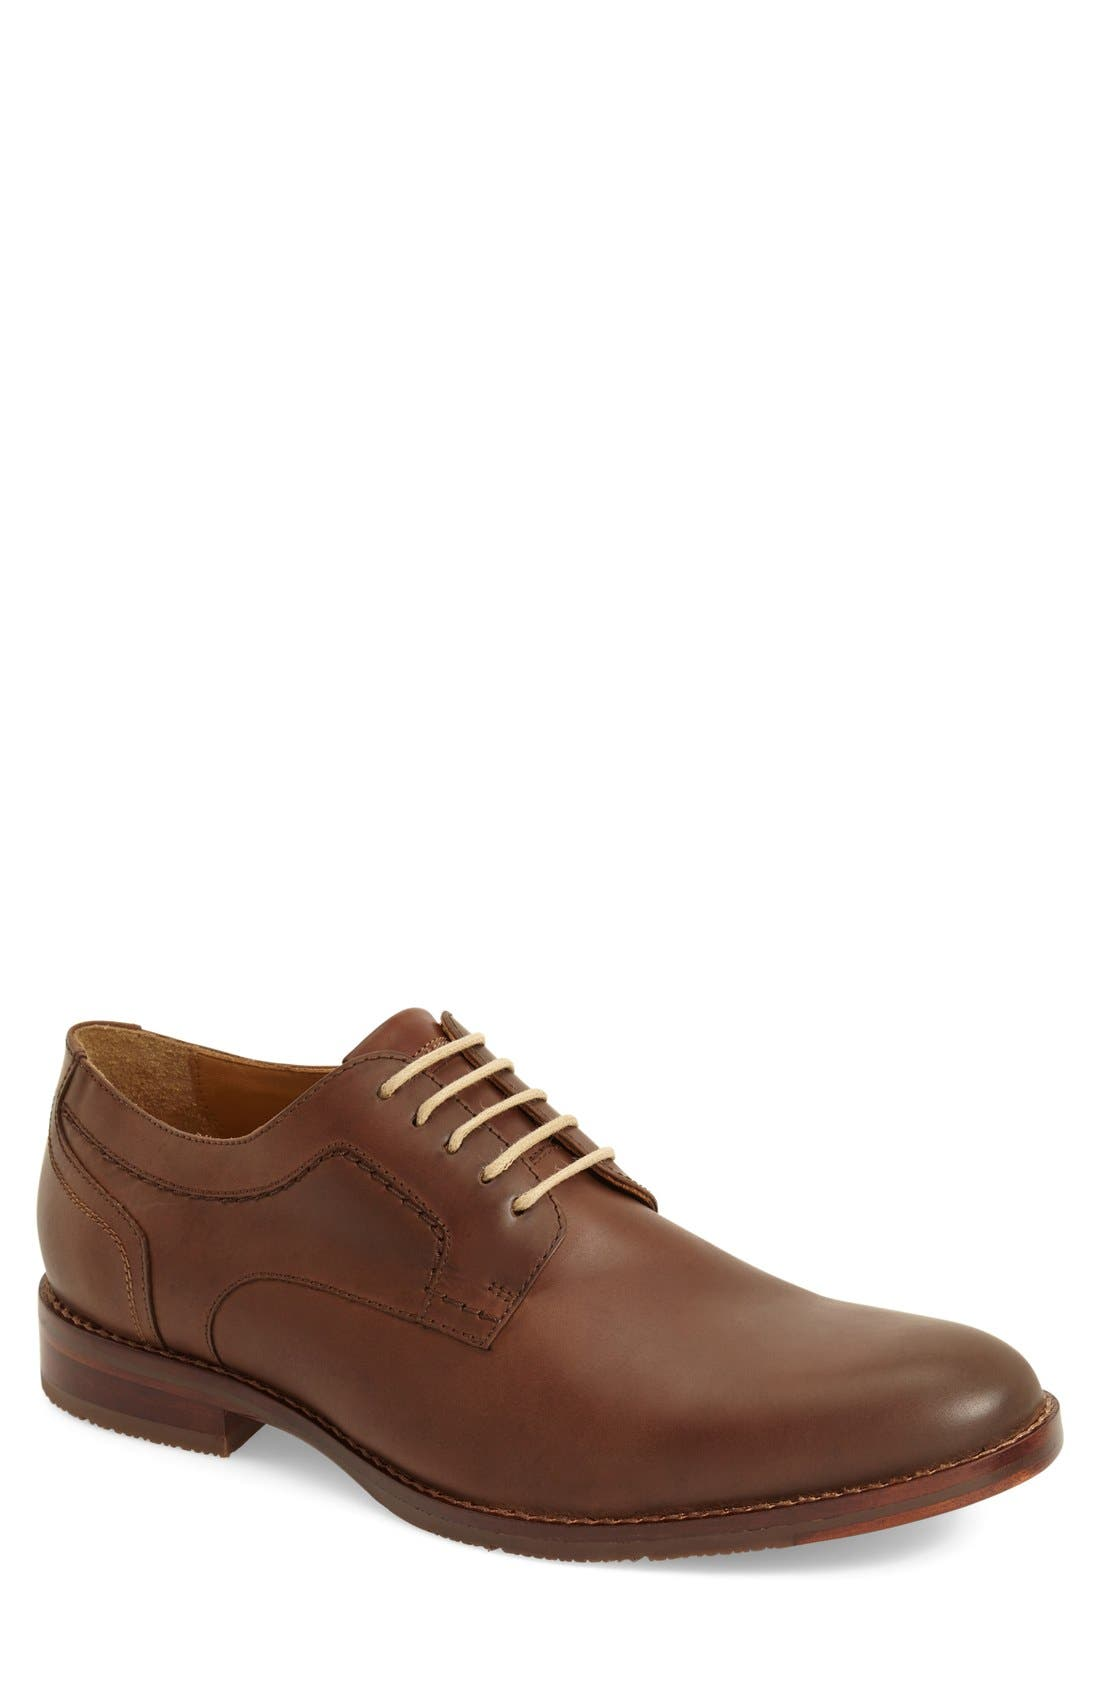 Johnston & Murphy 'Garner' Plain Toe Derby (Men)